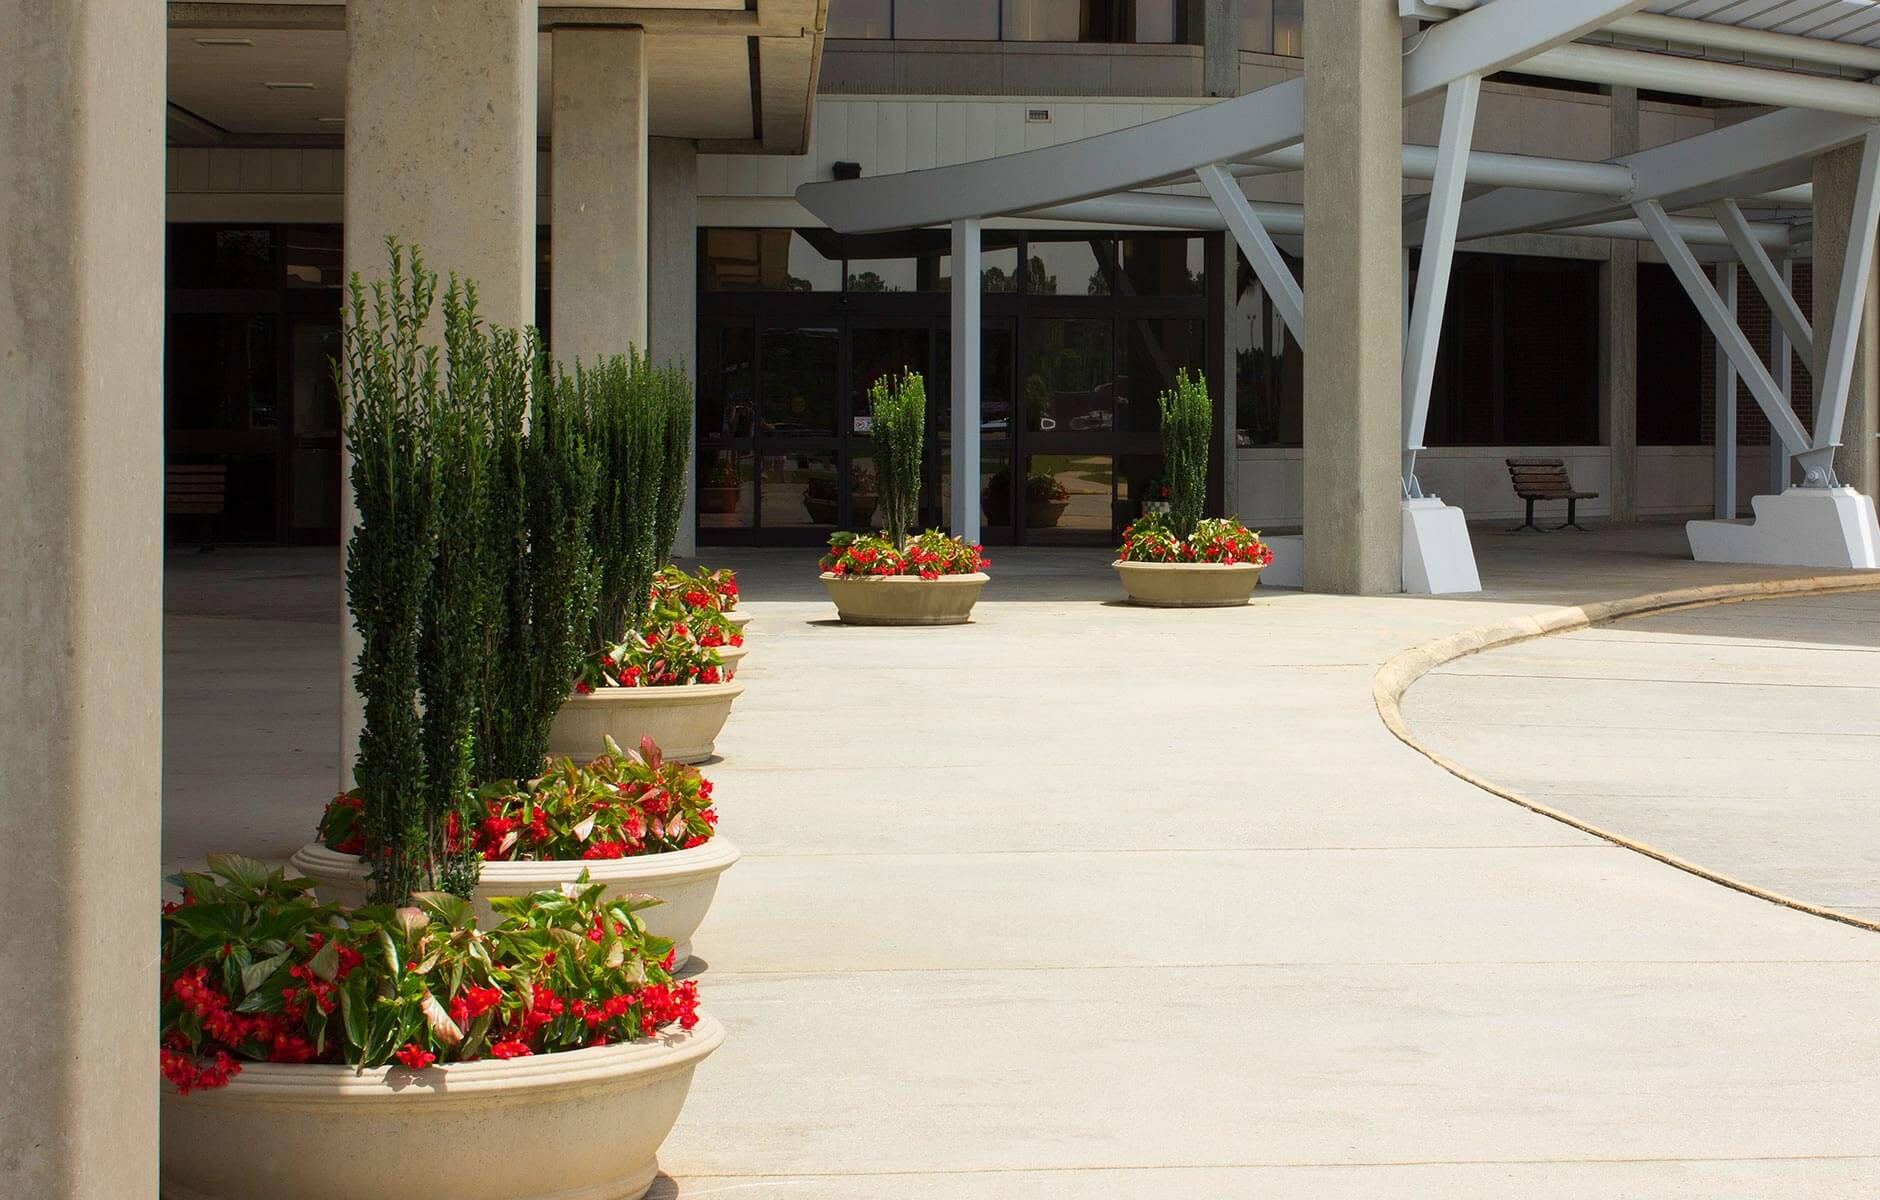 Large flower pots enhance the entrance to this industrial space